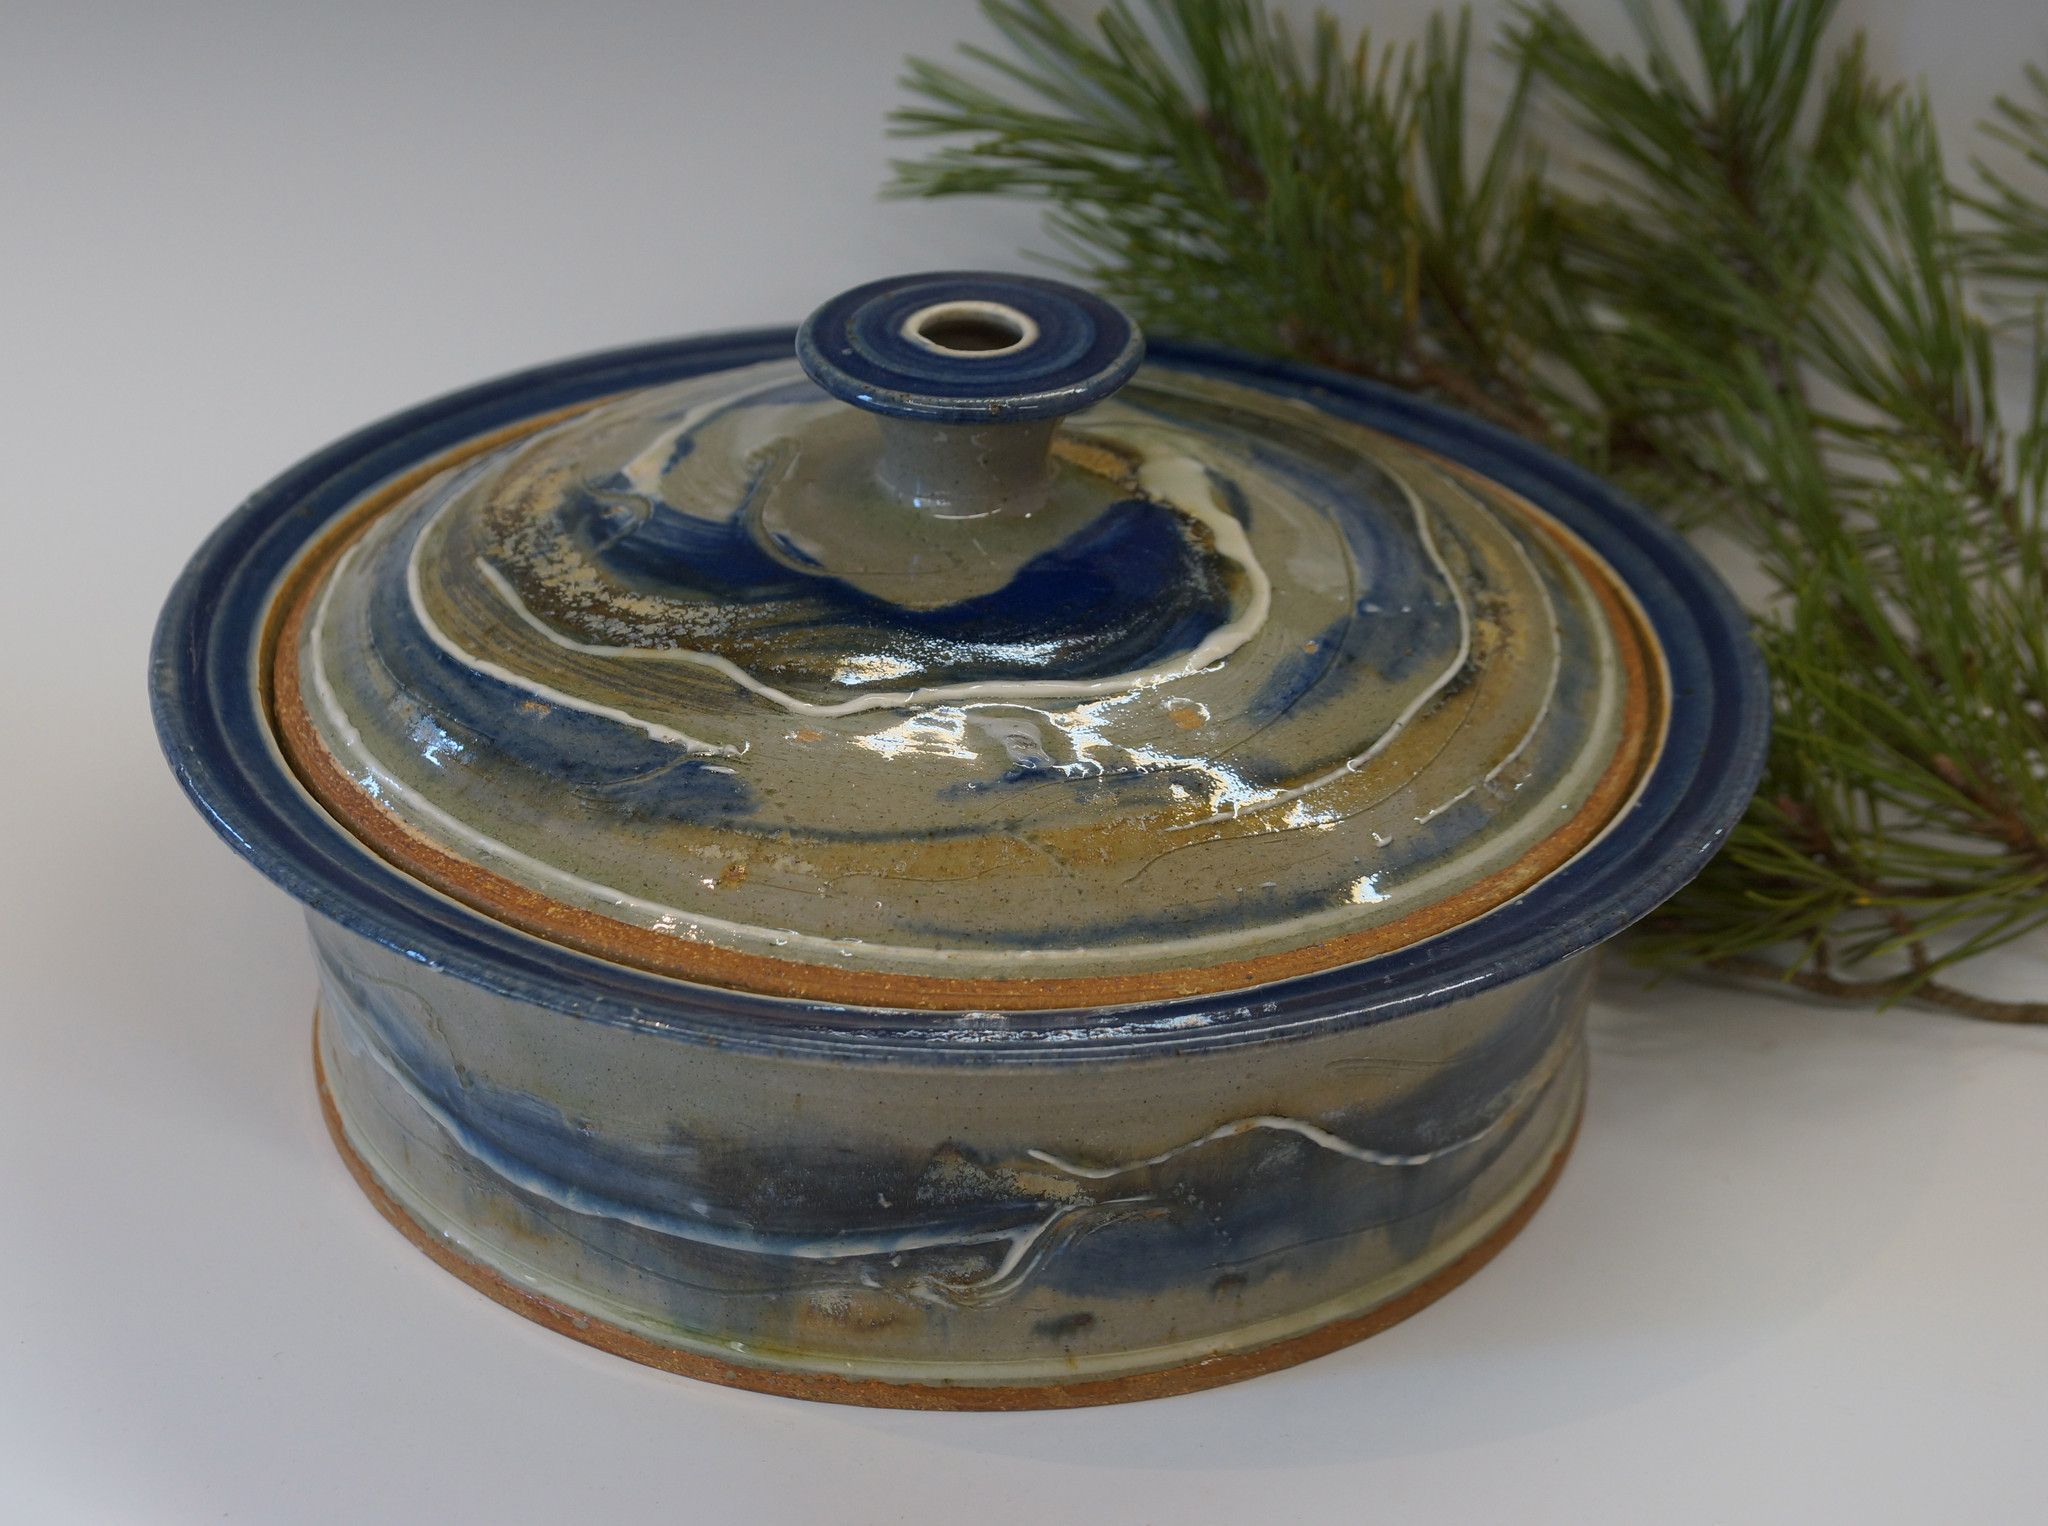 Covered Baking Dish 'Green Bay Blue' Glaze